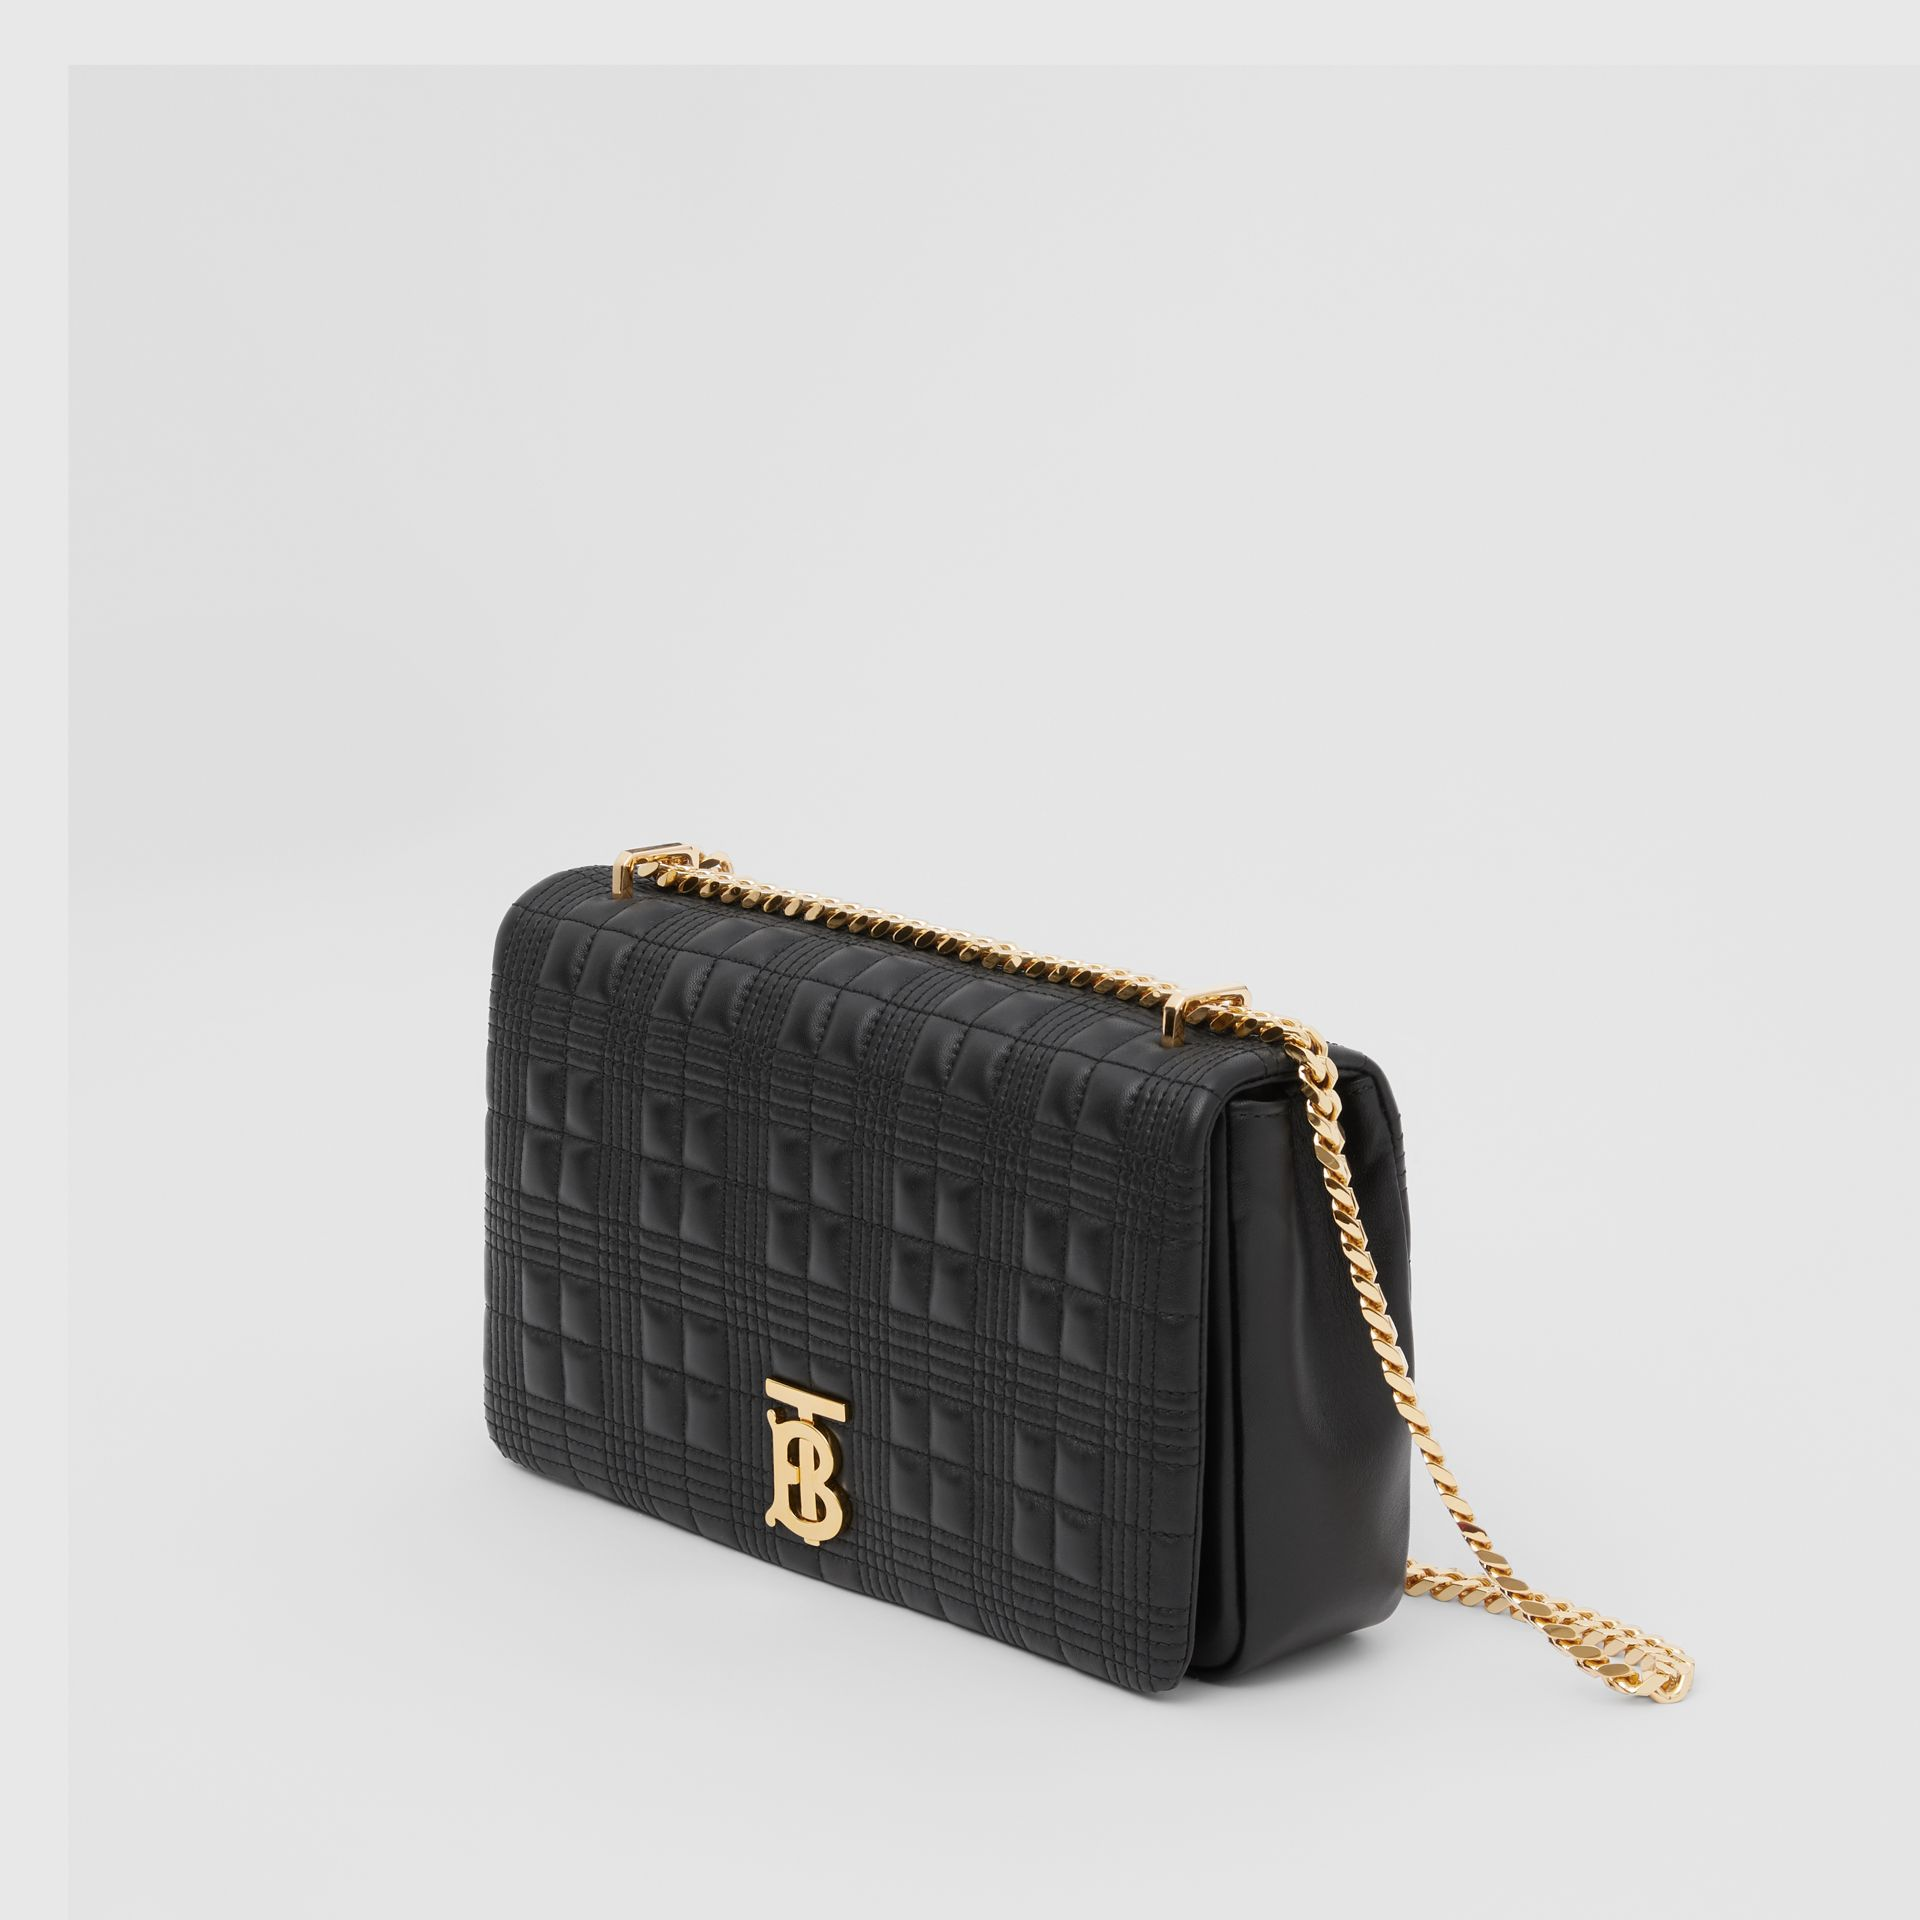 Medium Quilted Lambskin Lola Bag in Black - Women | Burberry - gallery image 2